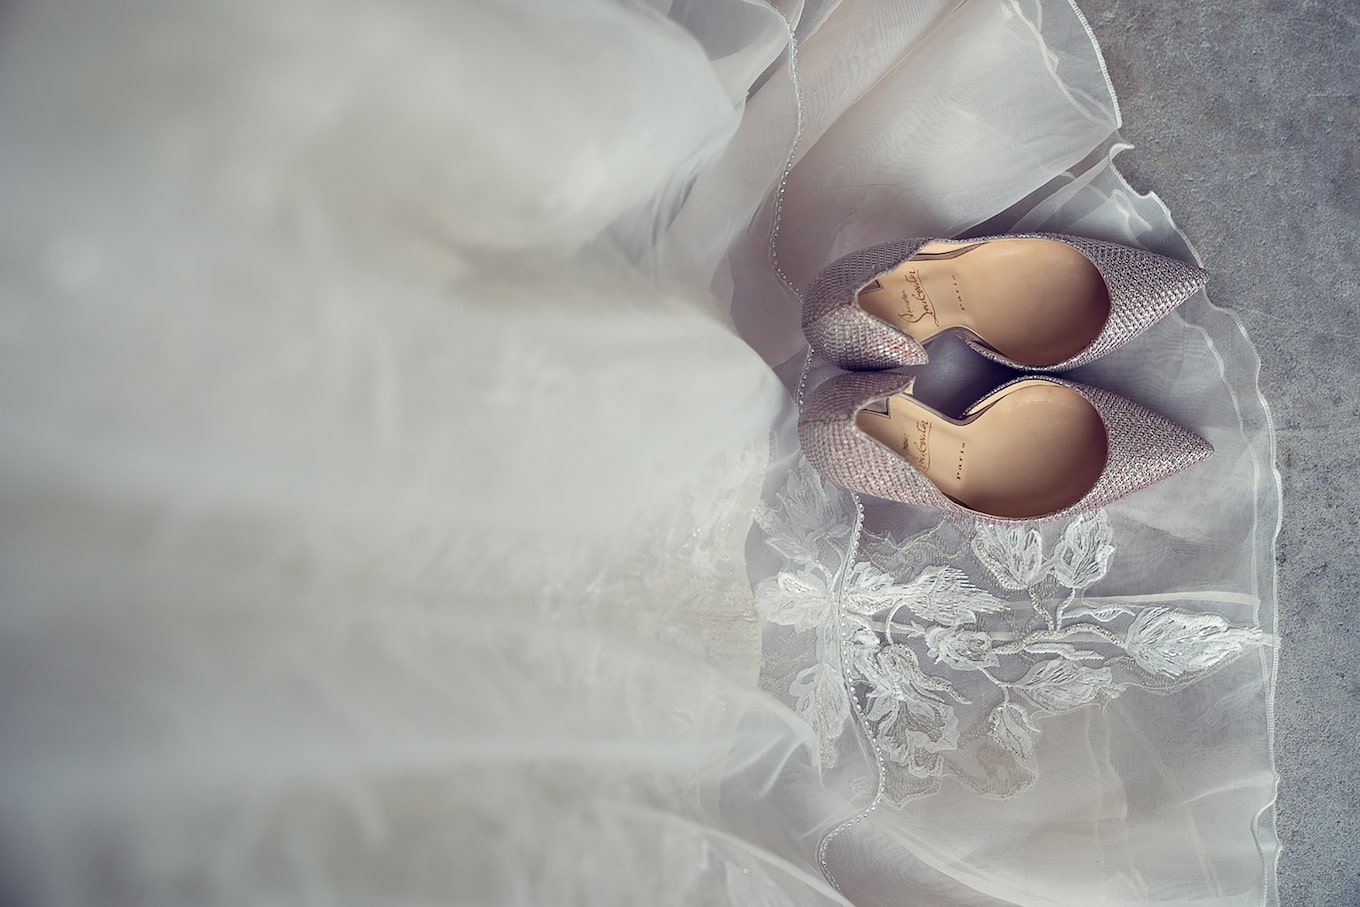 kate-hopewell-smith-sony-alpha-9-brides-shoes-placed-on-wedding-dress